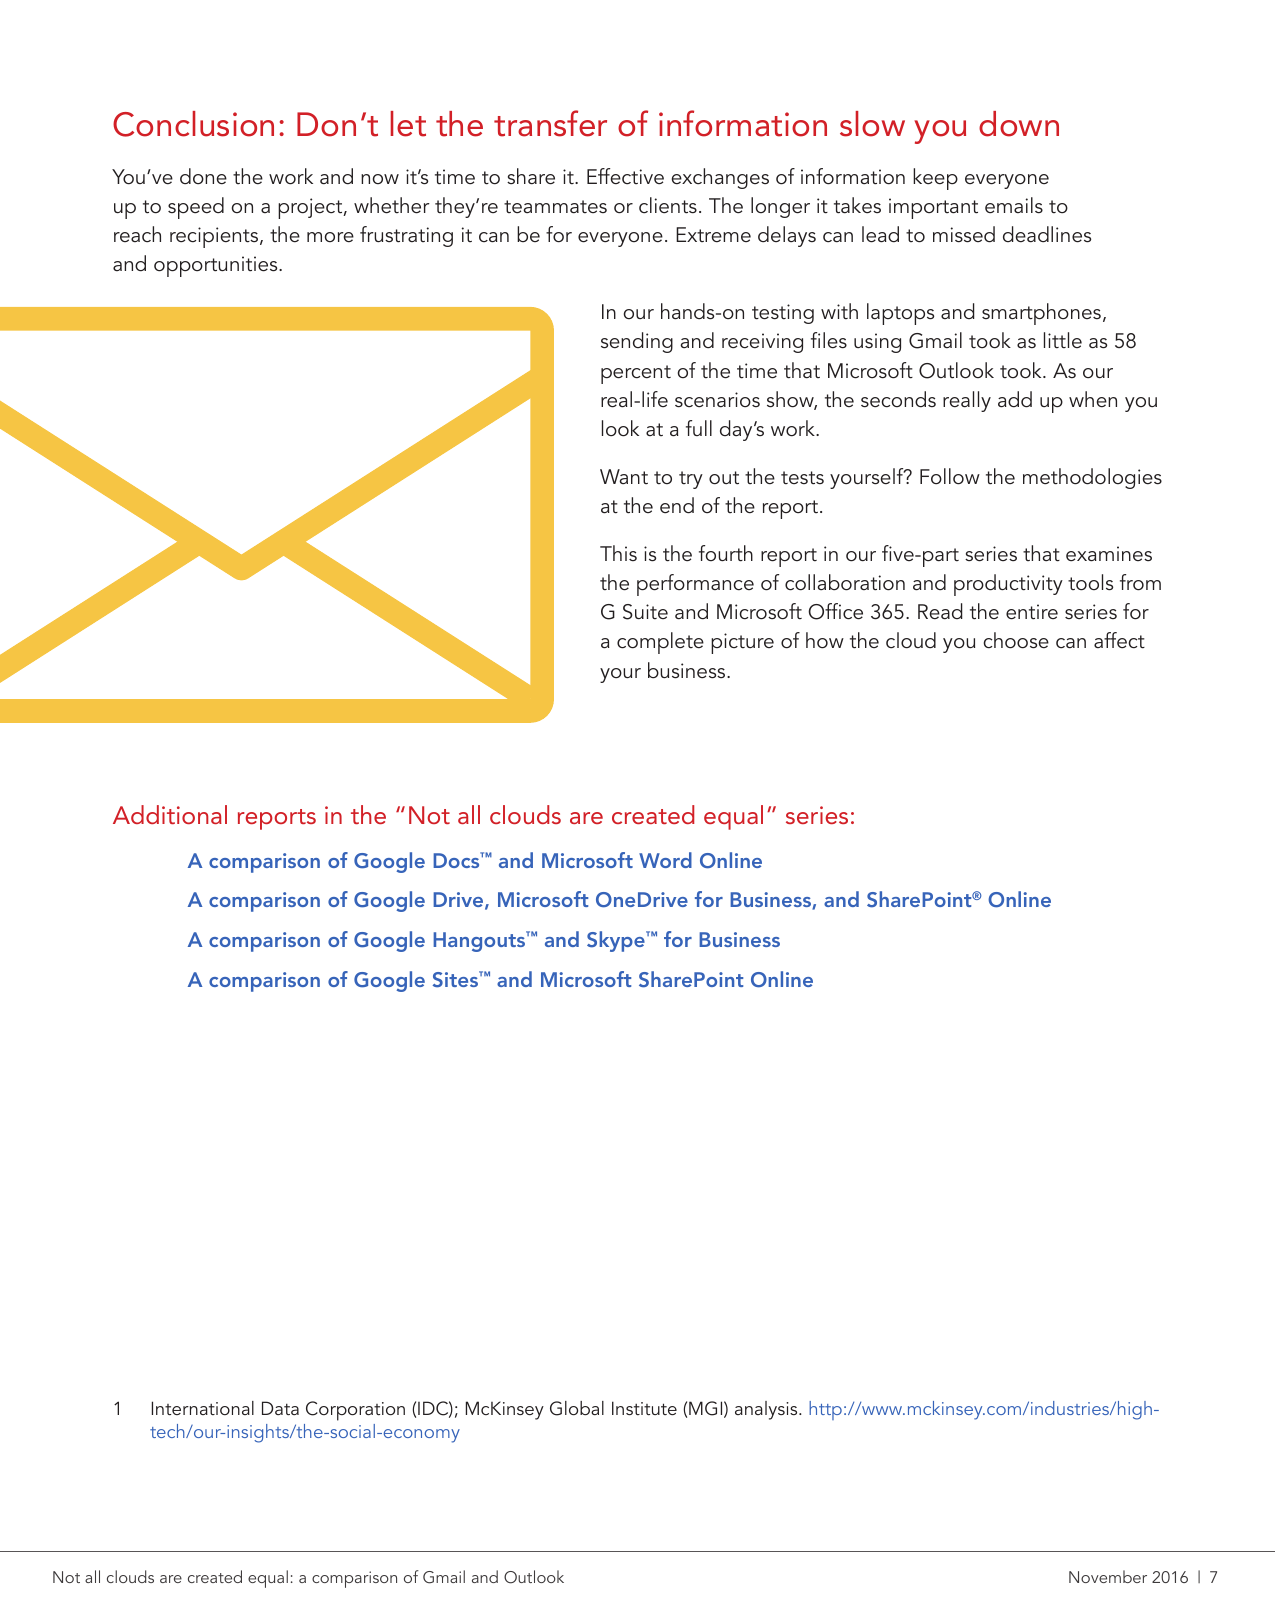 G_Suite_email_latency_report_1116 G Suite Email Latency